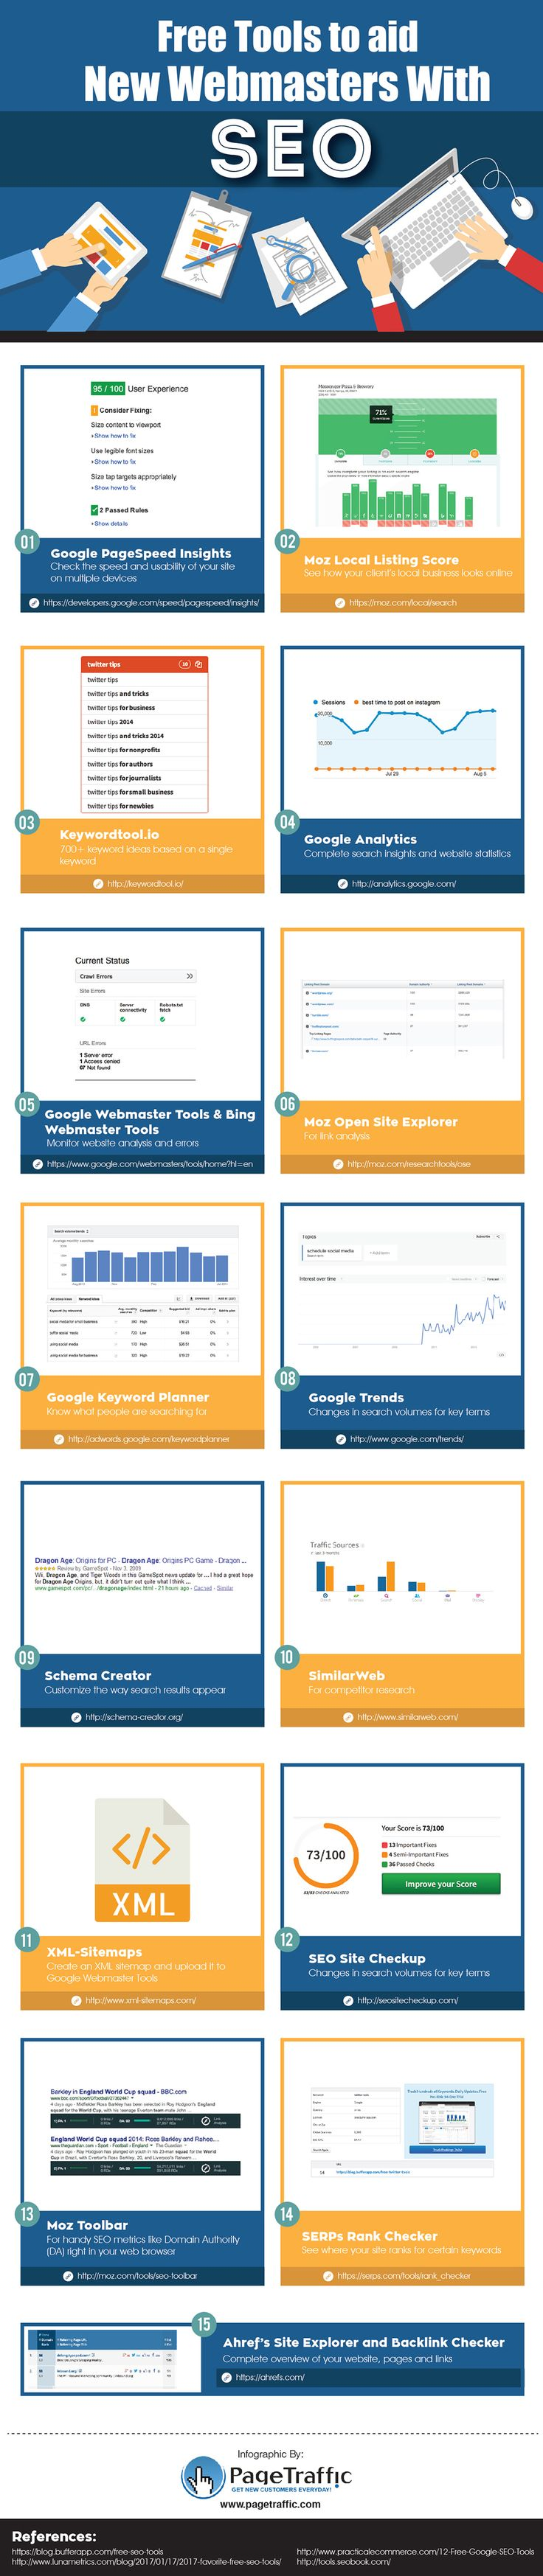 Great content amounts to nothing if your article doesn't rank on search engines! Here are 15 Free Tools to Help Track and Improve SEO Performance [Infographic] to guarantee you an audience for your words